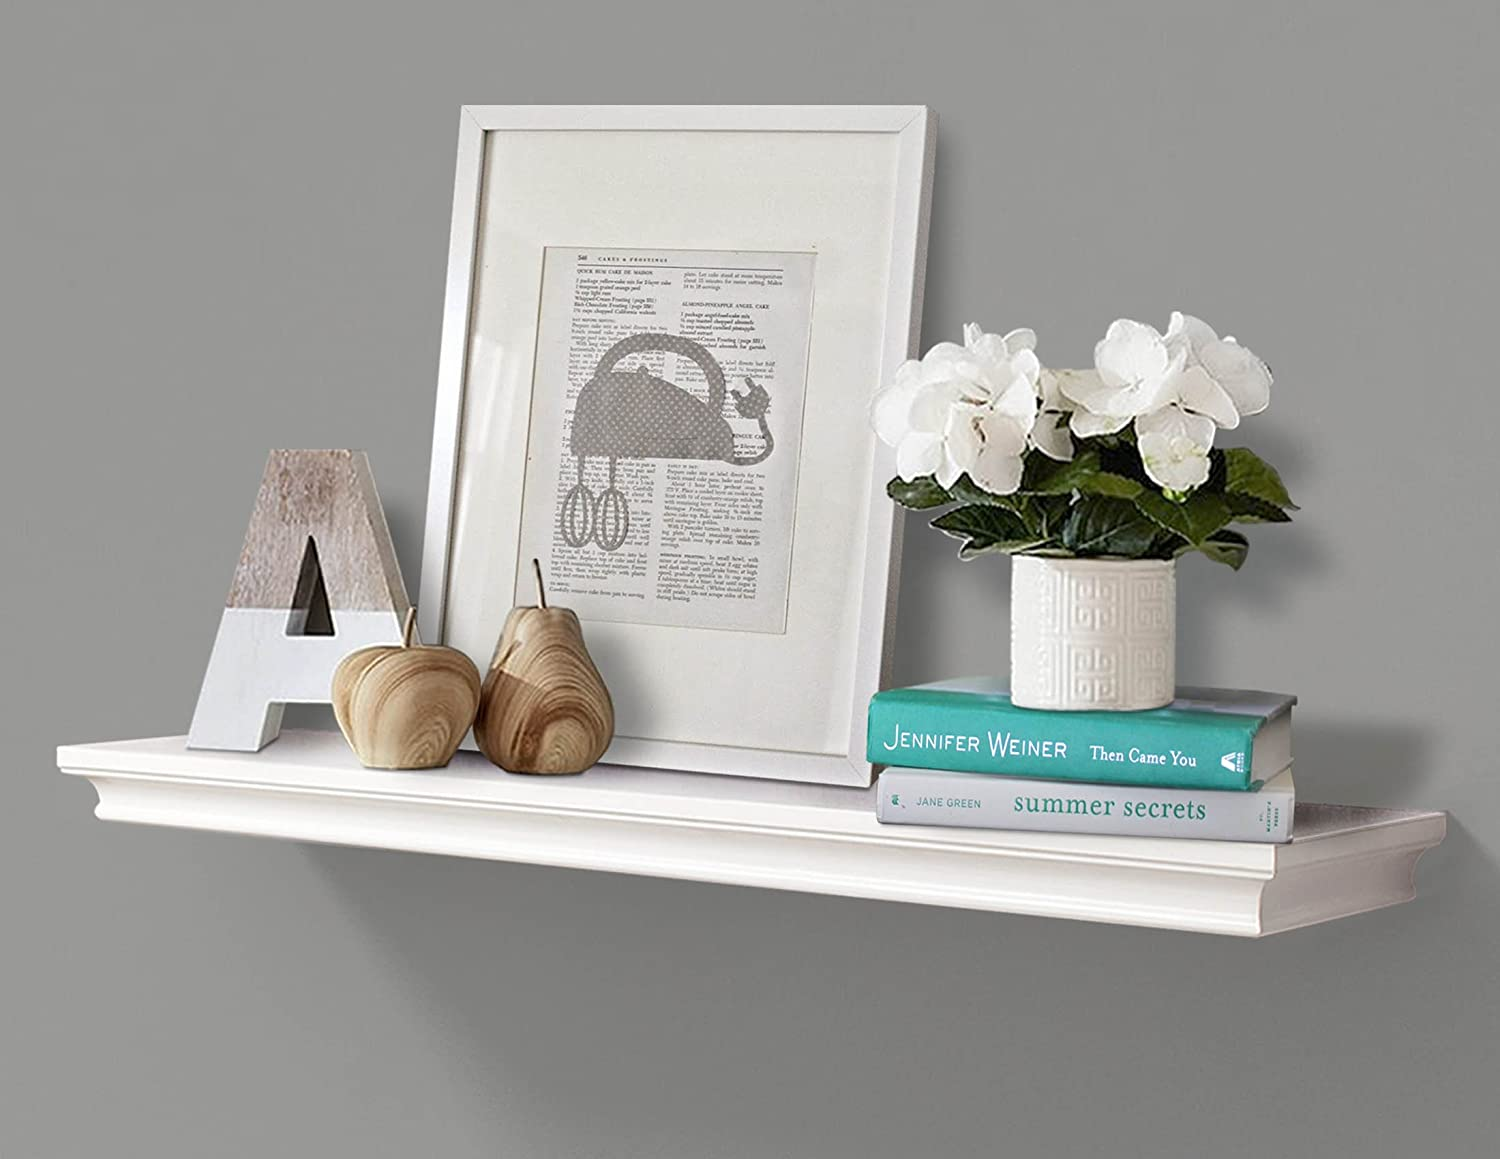 "AHDECOR Floating Shelves Wall Mounted, Deeper Wall Storage Shelf for Home  Décor, Super Sturdy, Easy to Install, White, 36"" Wide, 7 75"" Deep"